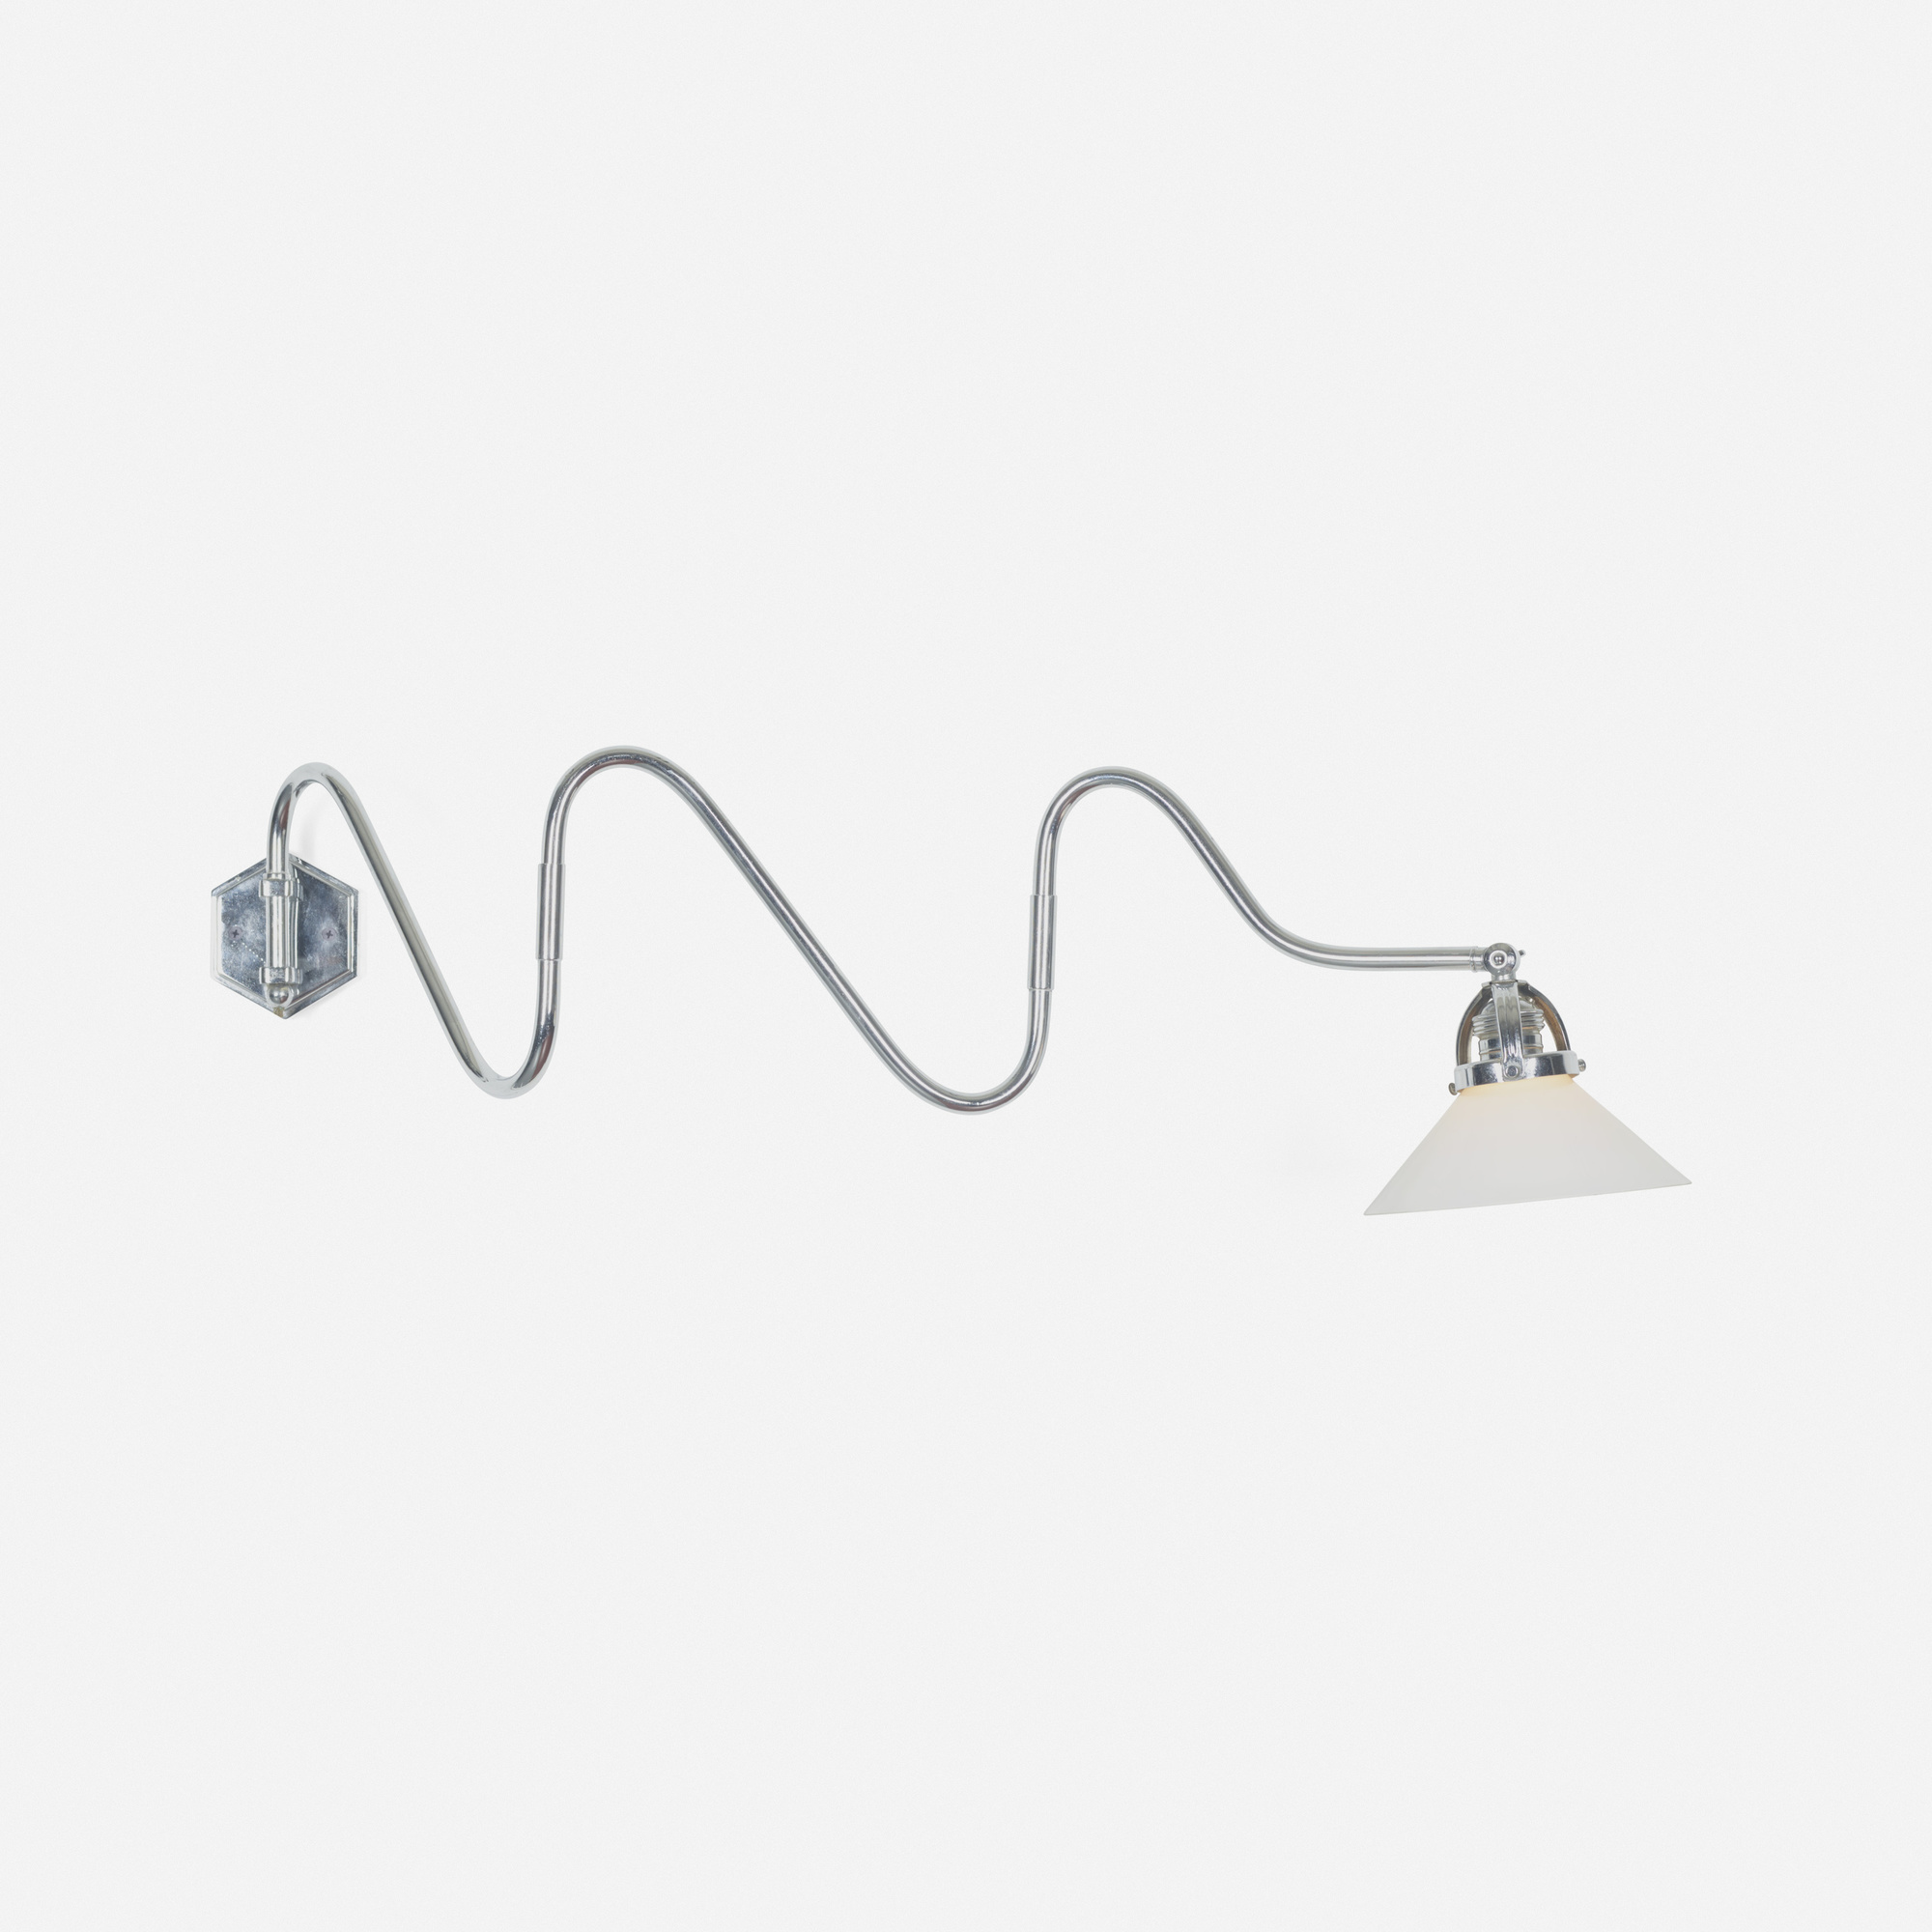 154: 20th Century / wall-mounted lamp (1 of 1)